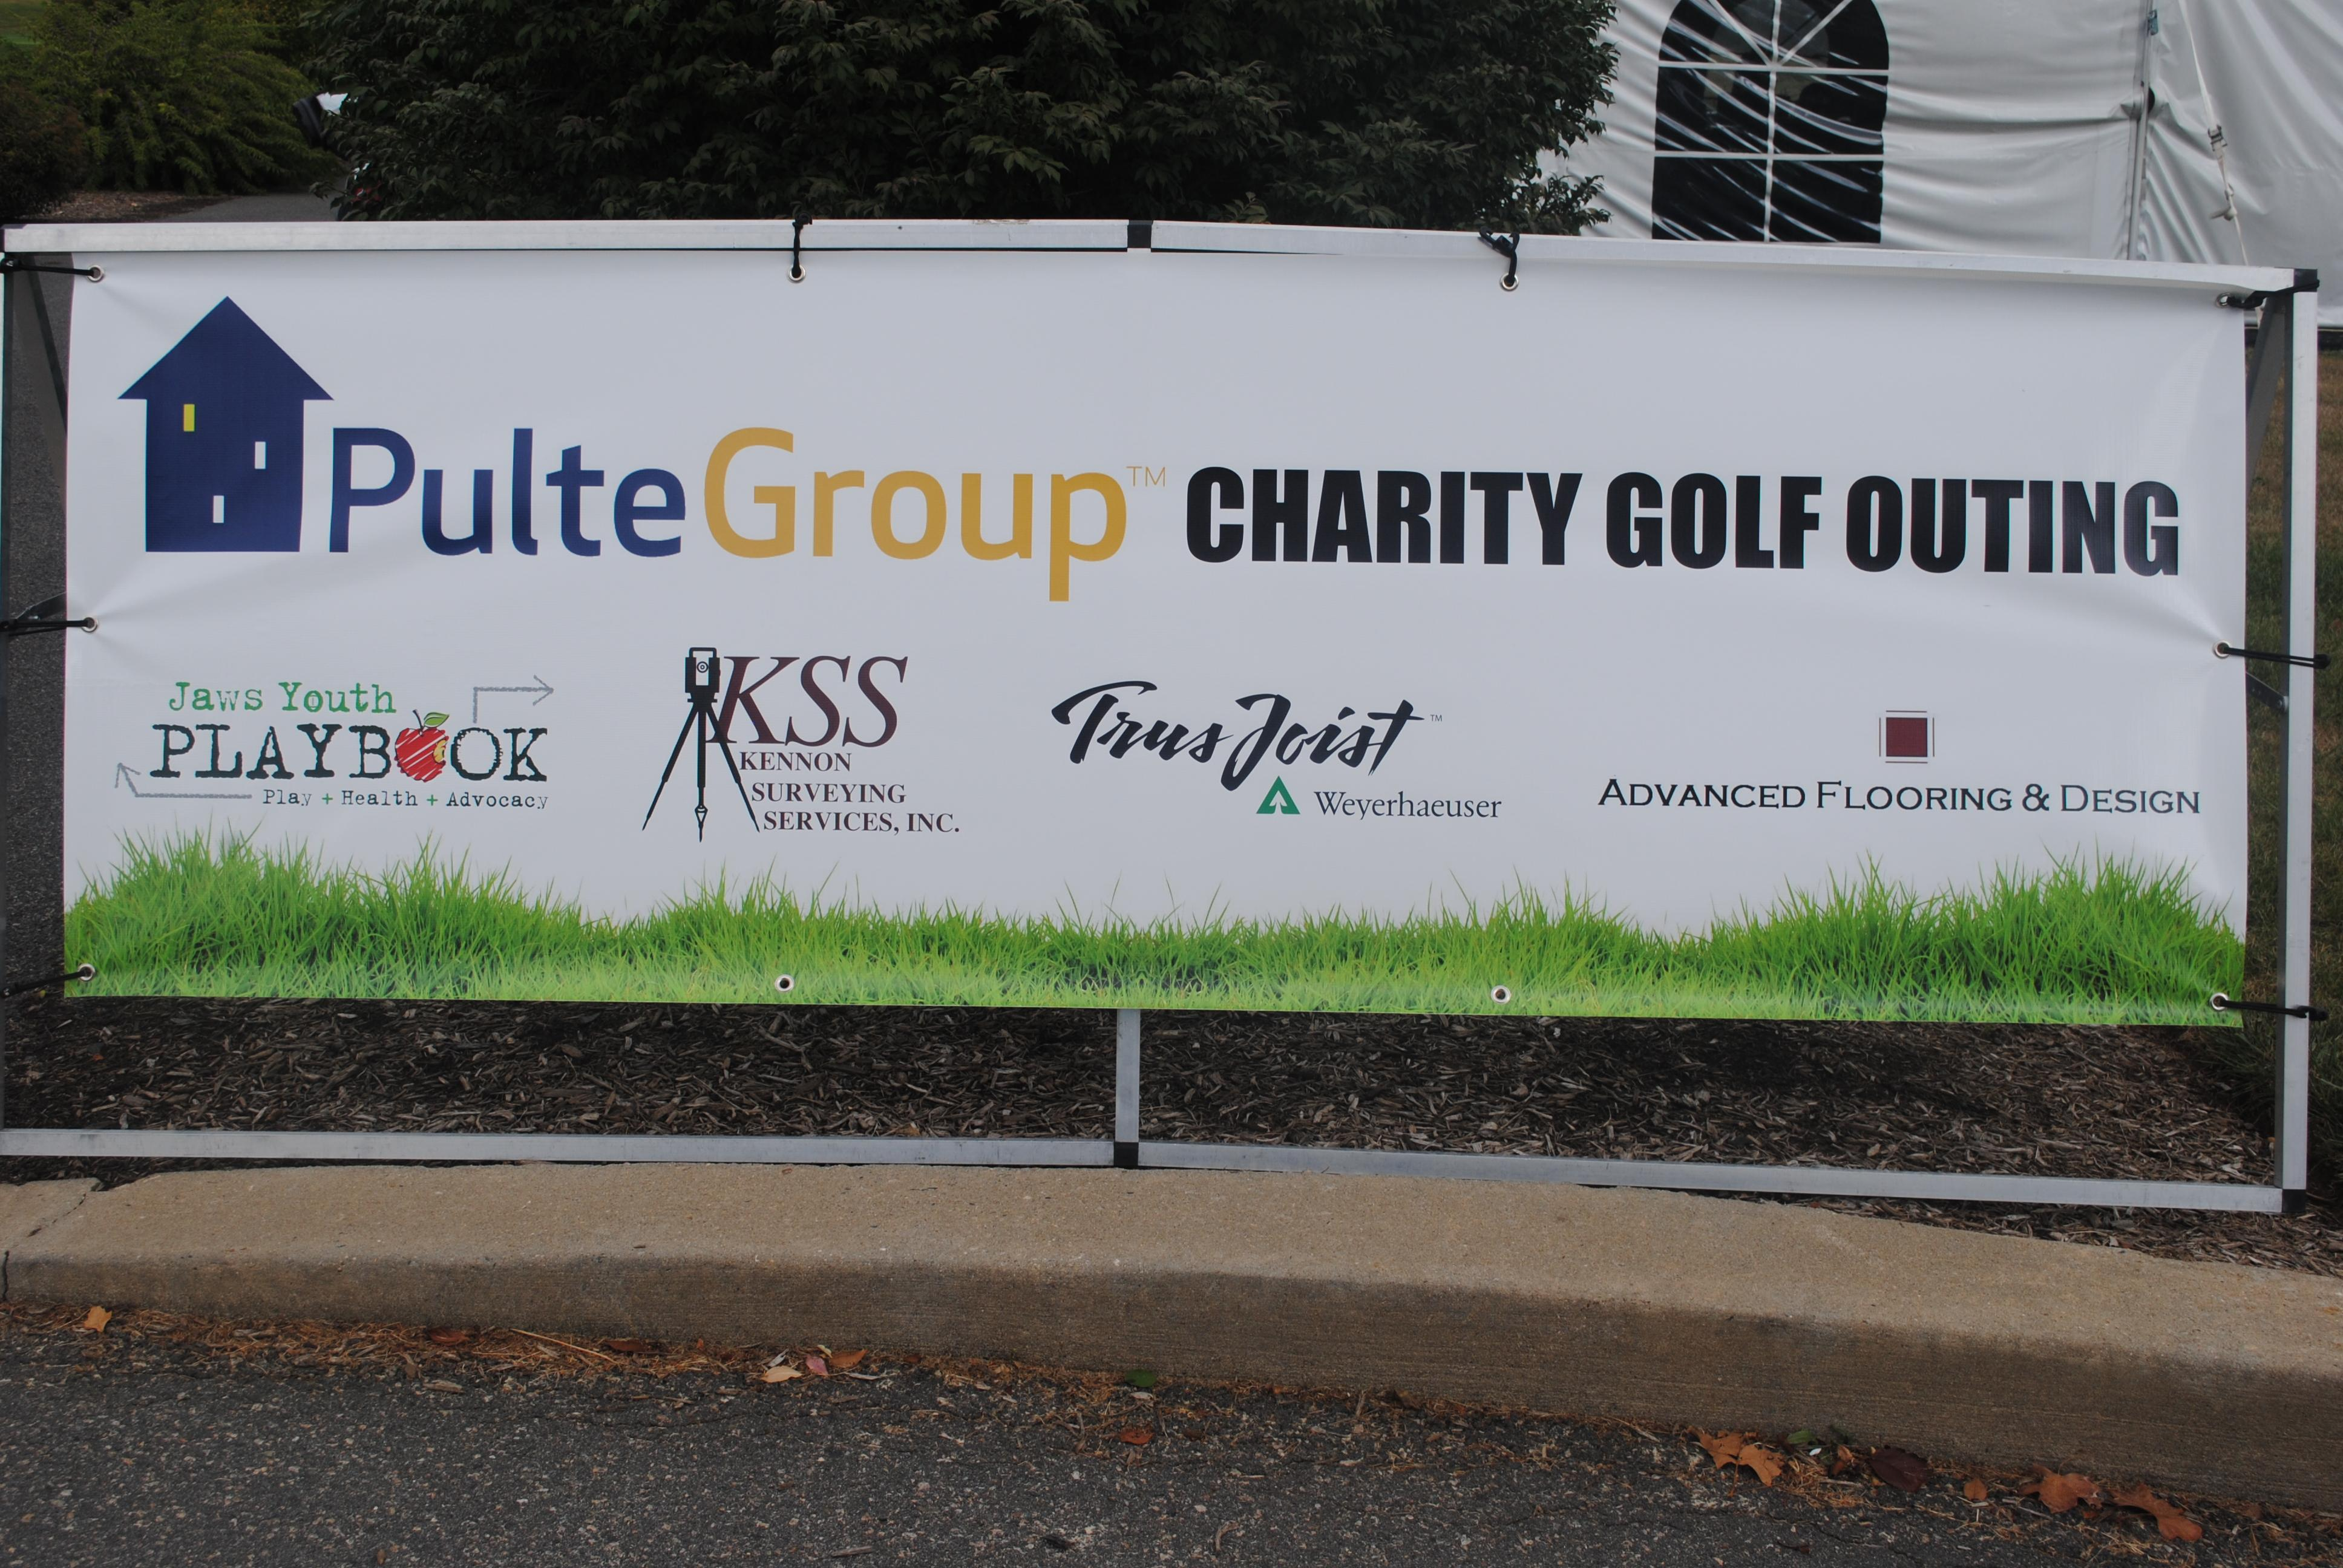 2018 Pulte Group Charity Golf Tournament / Jaws Youth Playbook